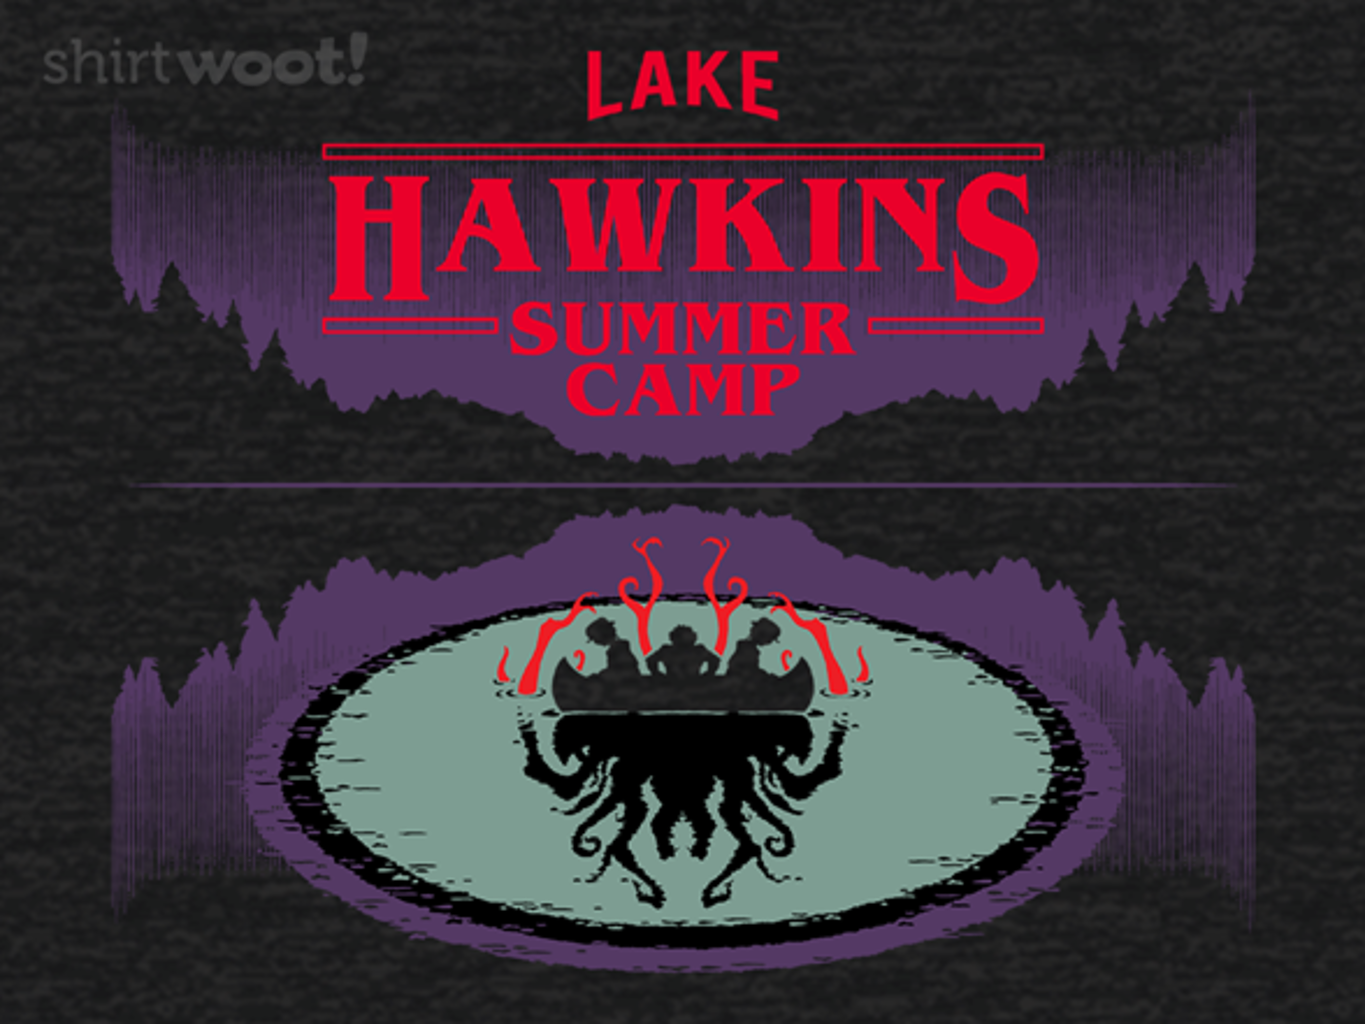 Woot!: Lake Hawkins Summer Camp